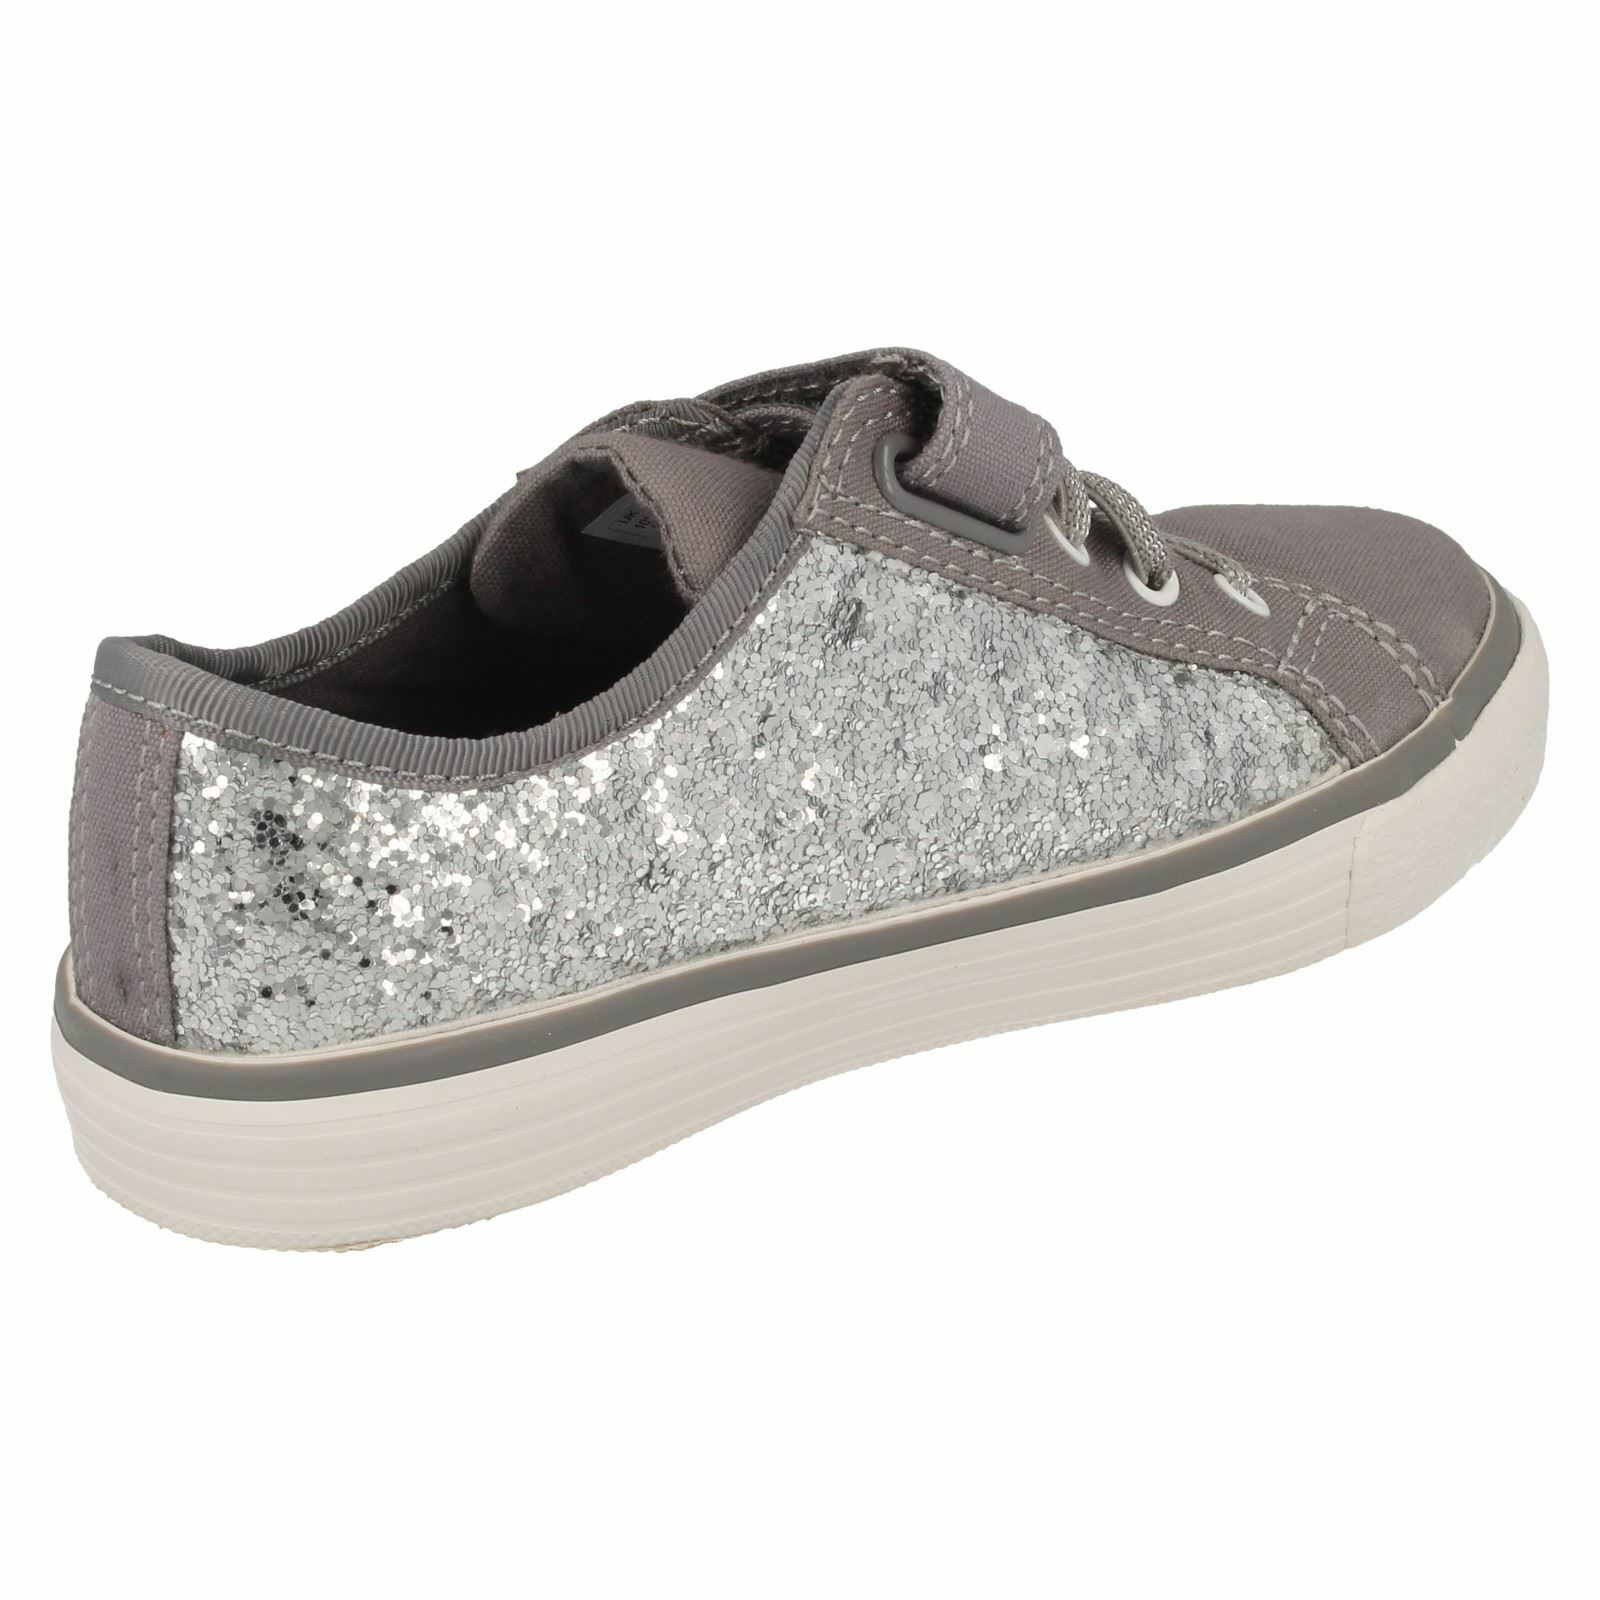 BRILL PRIZE GIRLS CLARKS ELASTIC LACE RIPTAPE CANVAS DOODLES SHOES WITH SPARKLE